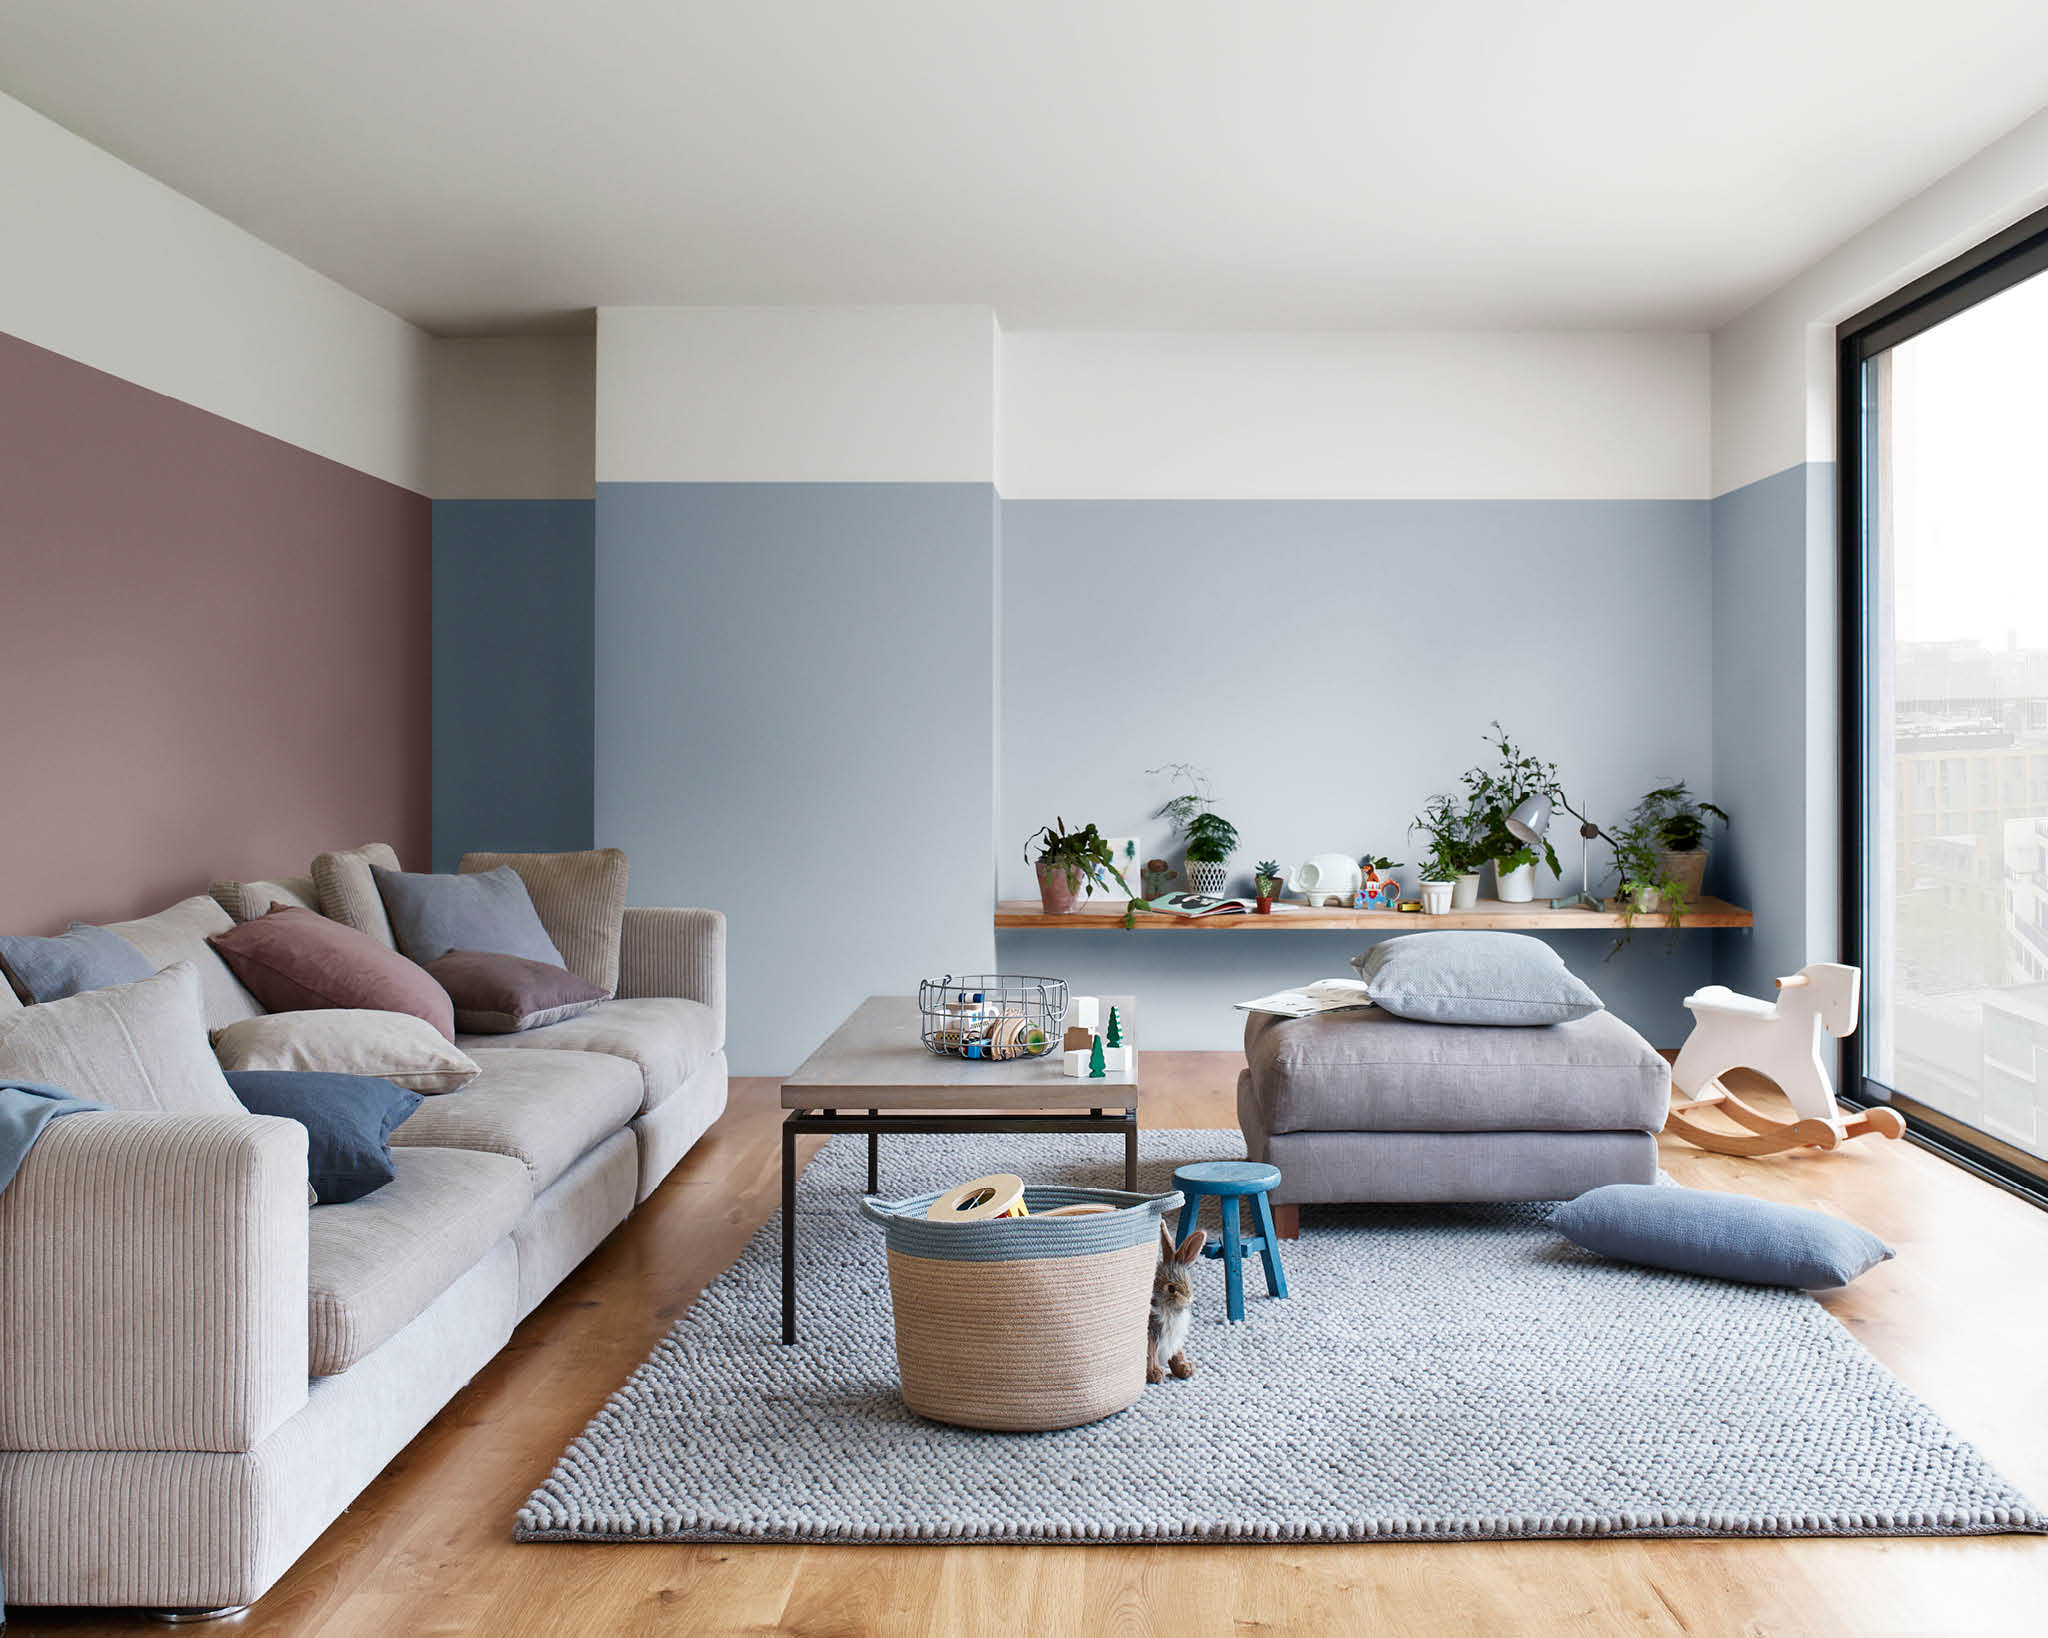 8 ways to change up your living room with Dulux Colour of the Year